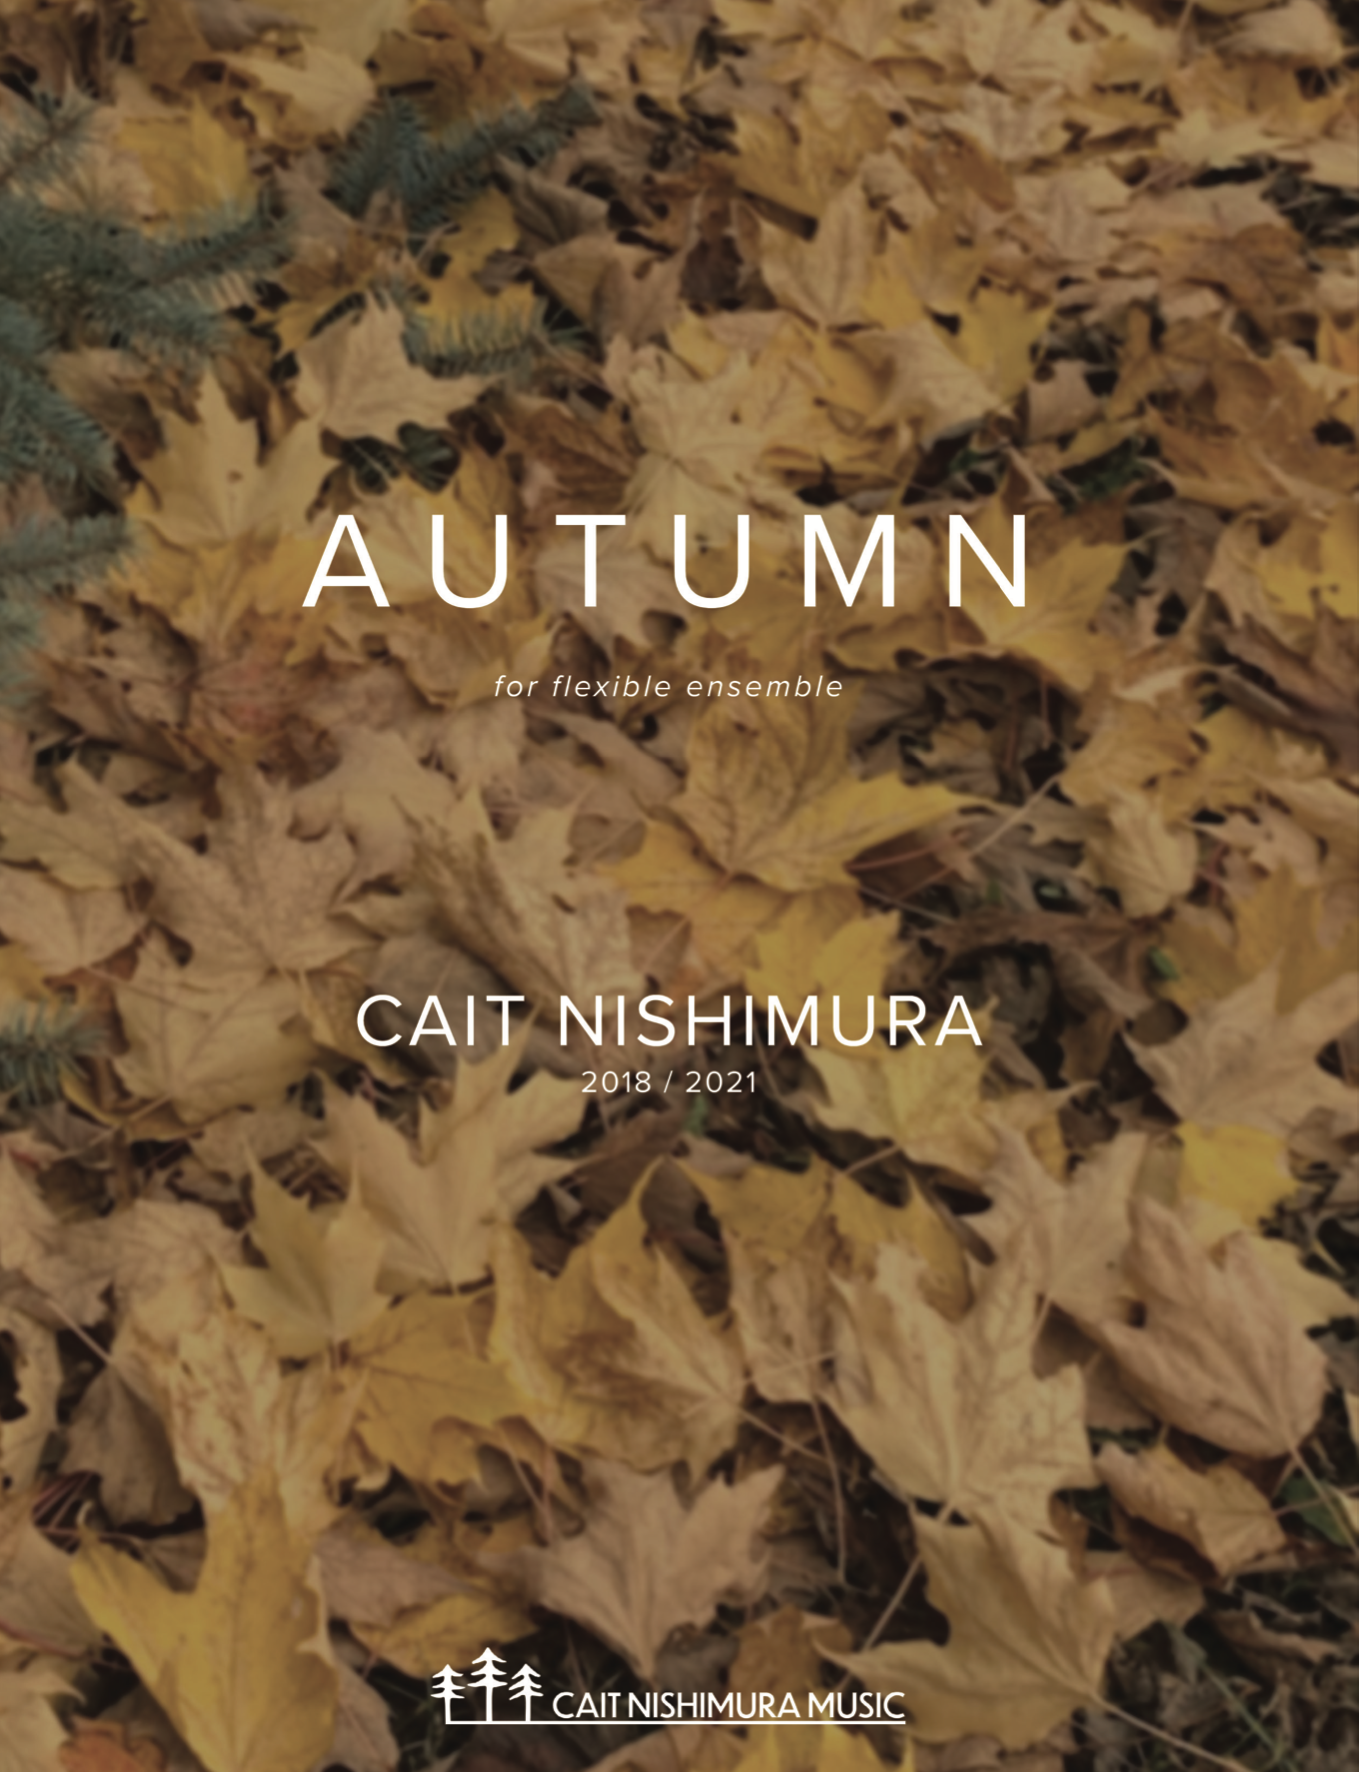 Autumn (Flex Version) by Cait Nishimura